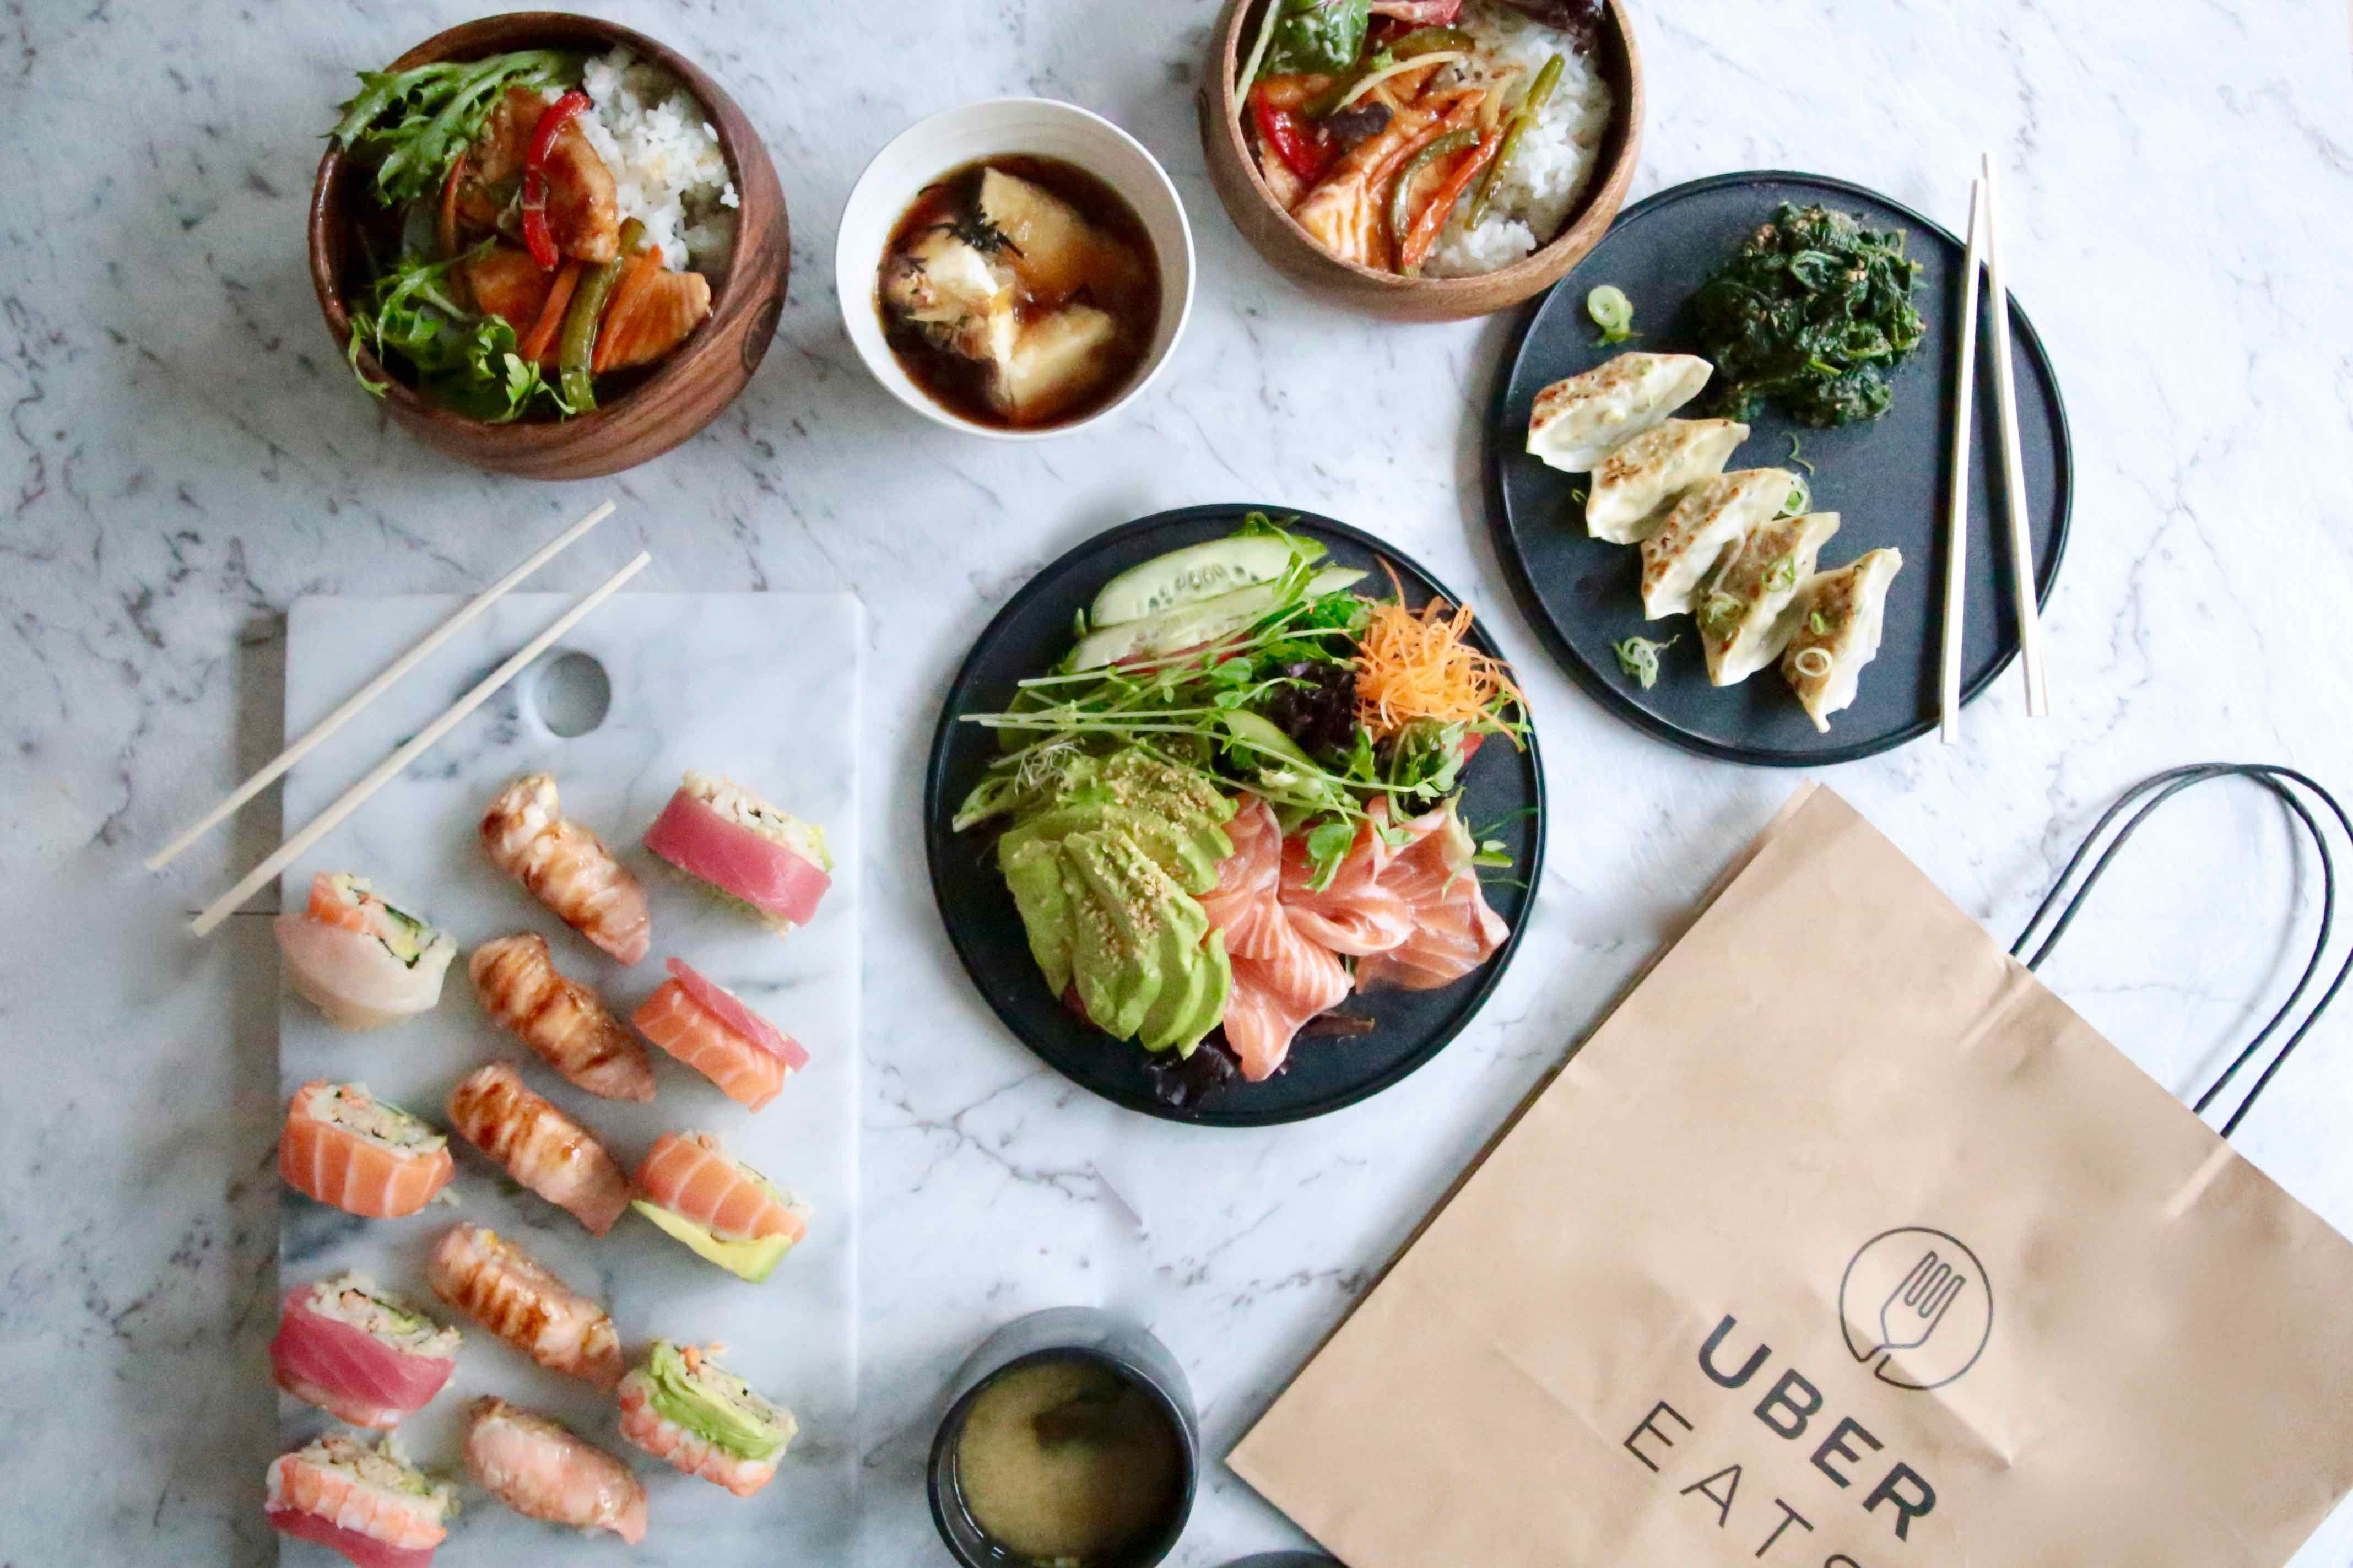 UBER EATS LAUNCHES NEW LOCATIONS ACROSS SYDNEY – The Brown Paper Bag